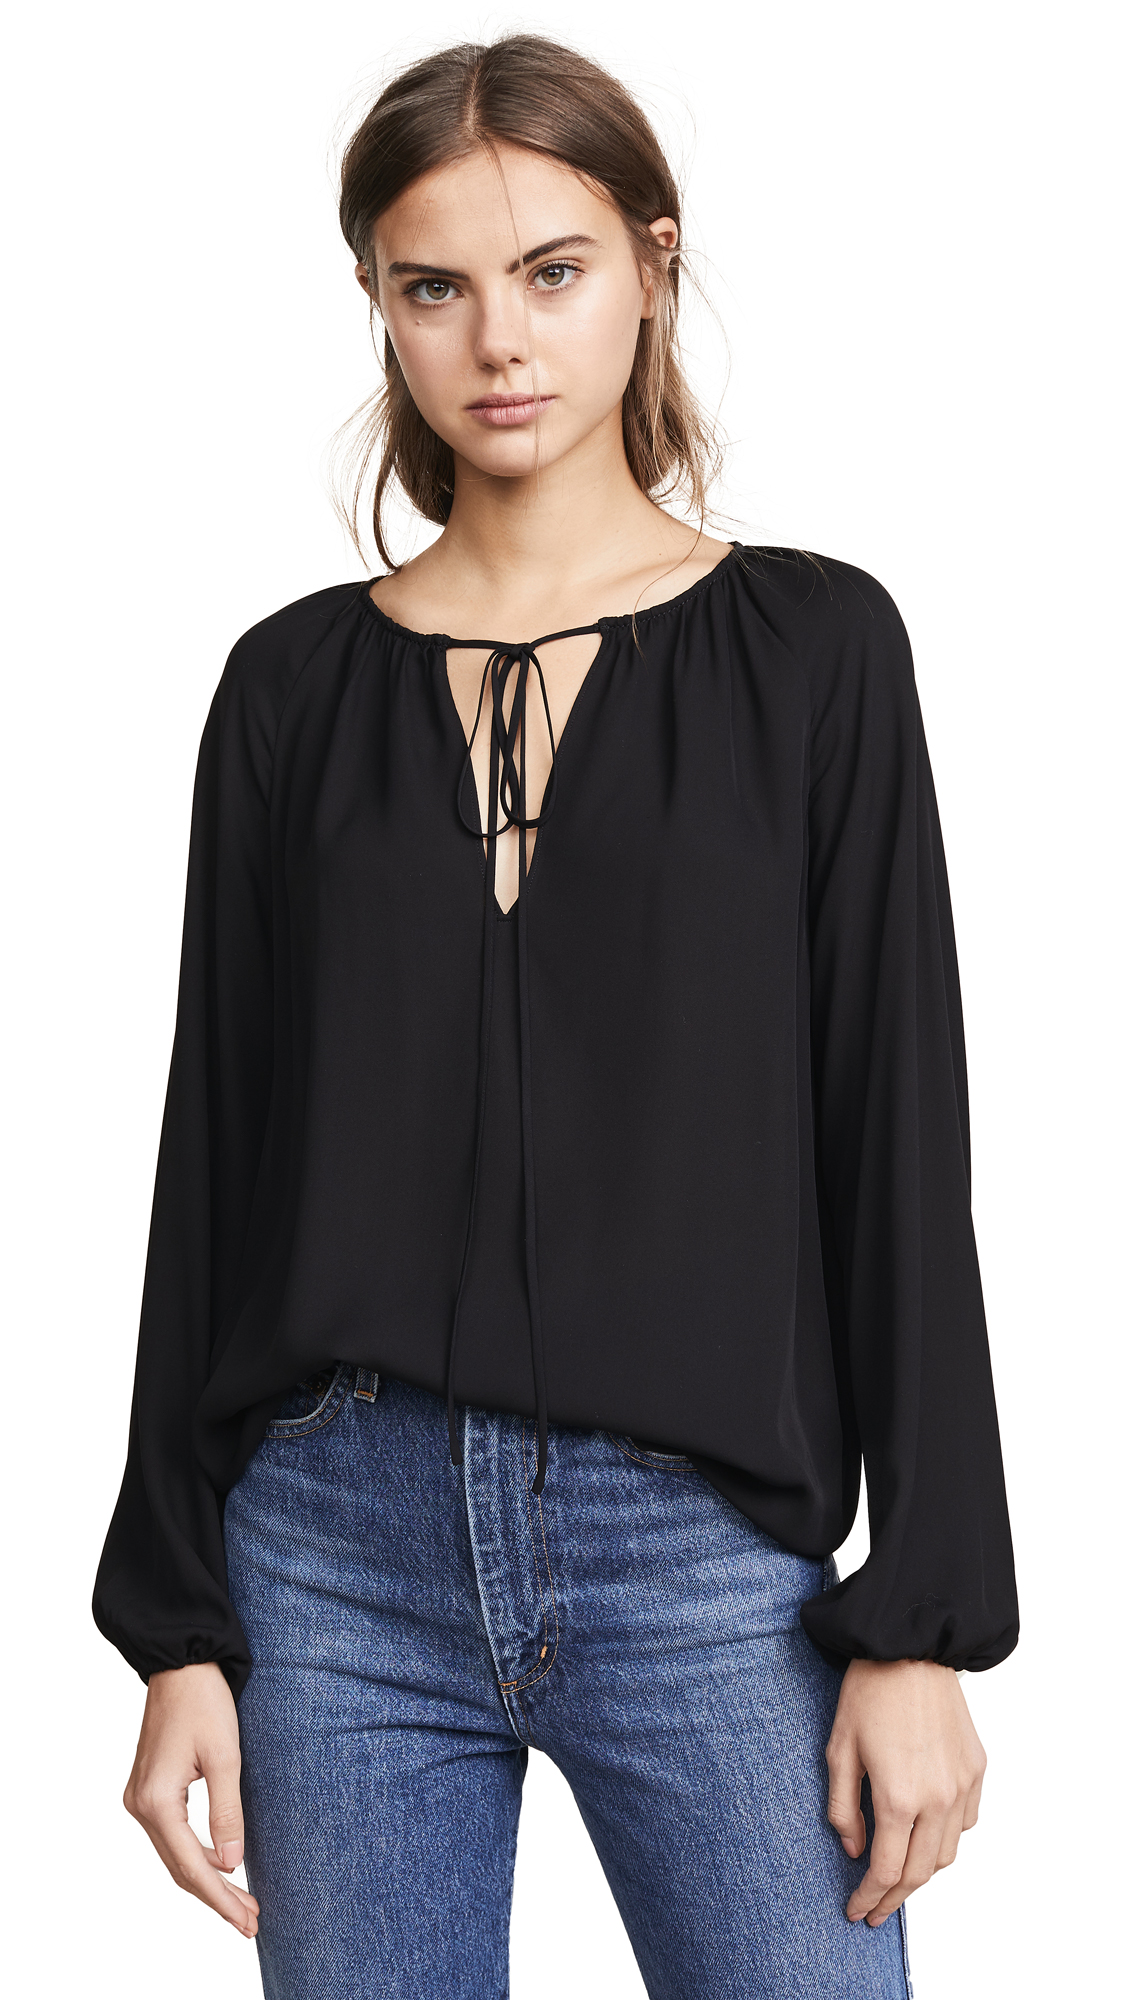 Theory Gathered Long Sleeve Top - Black